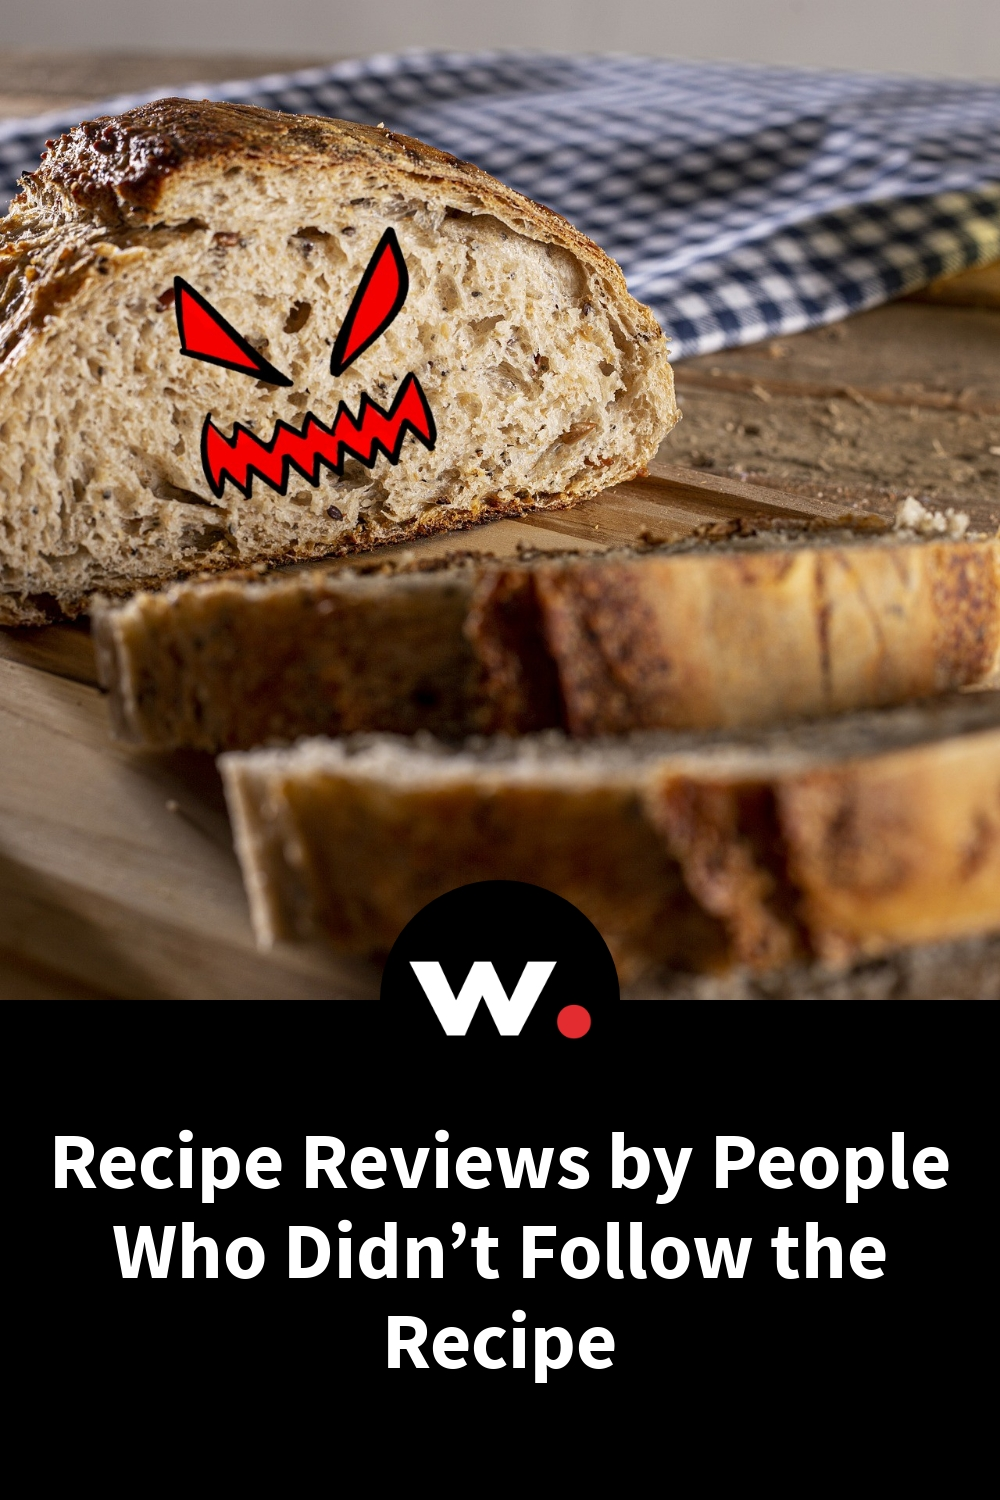 Recipe Reviews By People Who Didn't Follow the Recipe